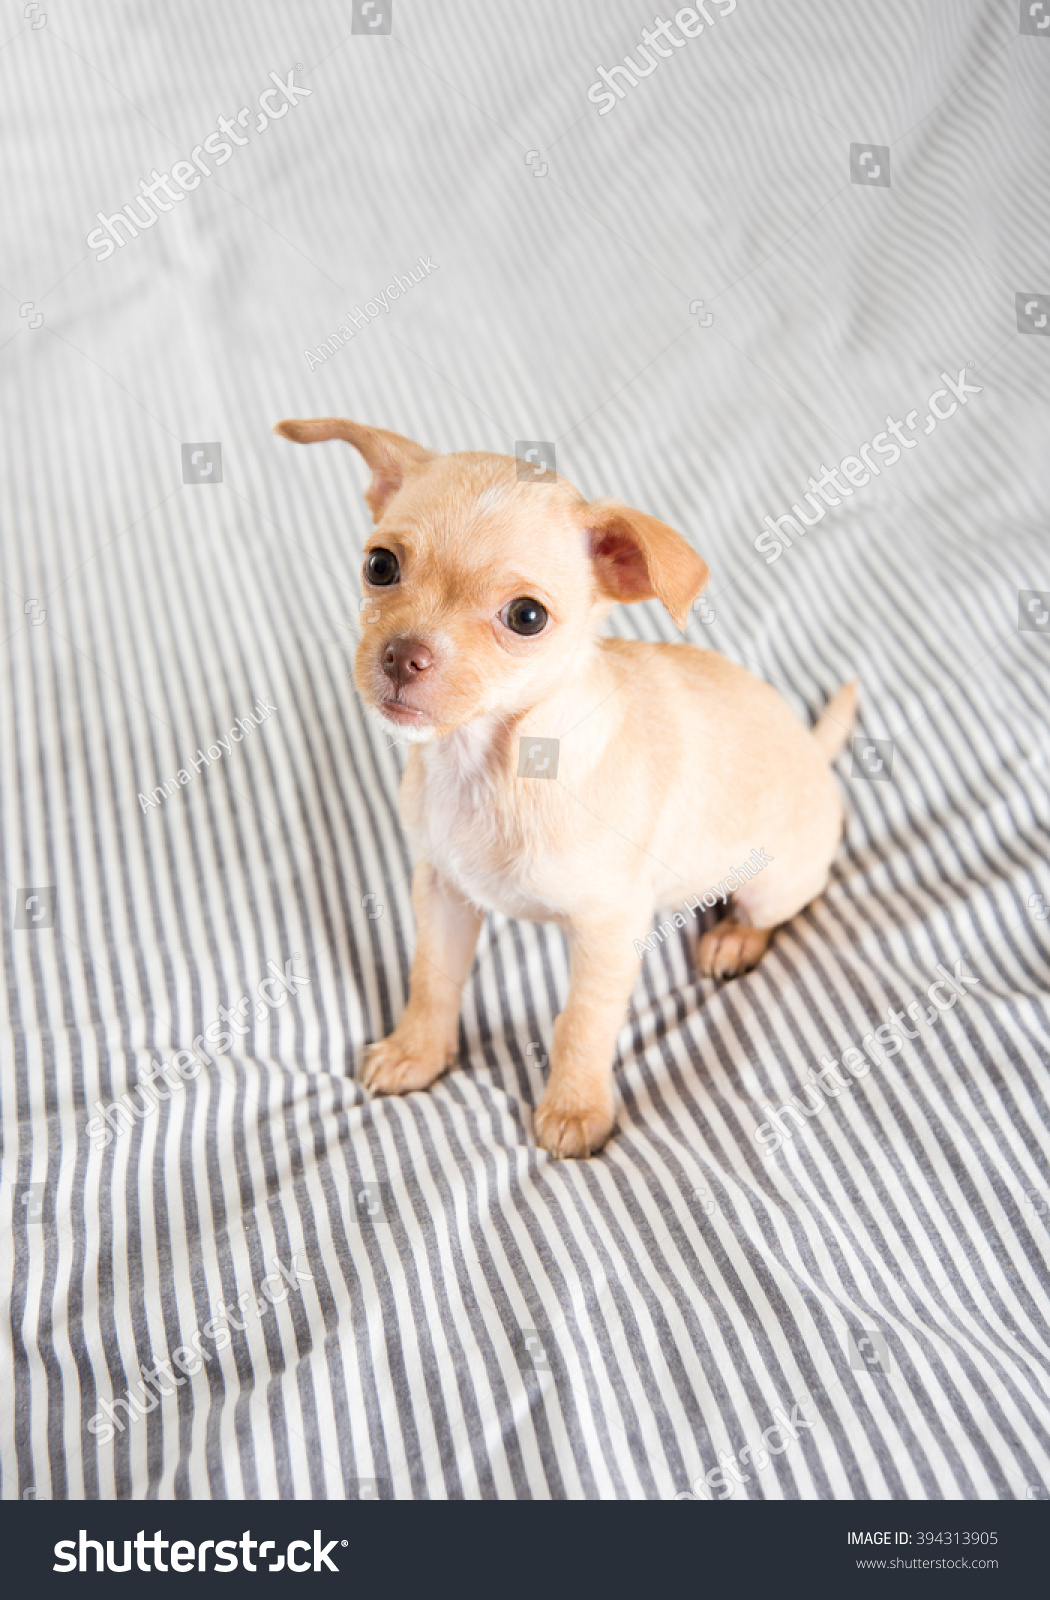 Royalty-free Tiny Tan Colored Chihuahua Puppy on… #394313905 Stock ...